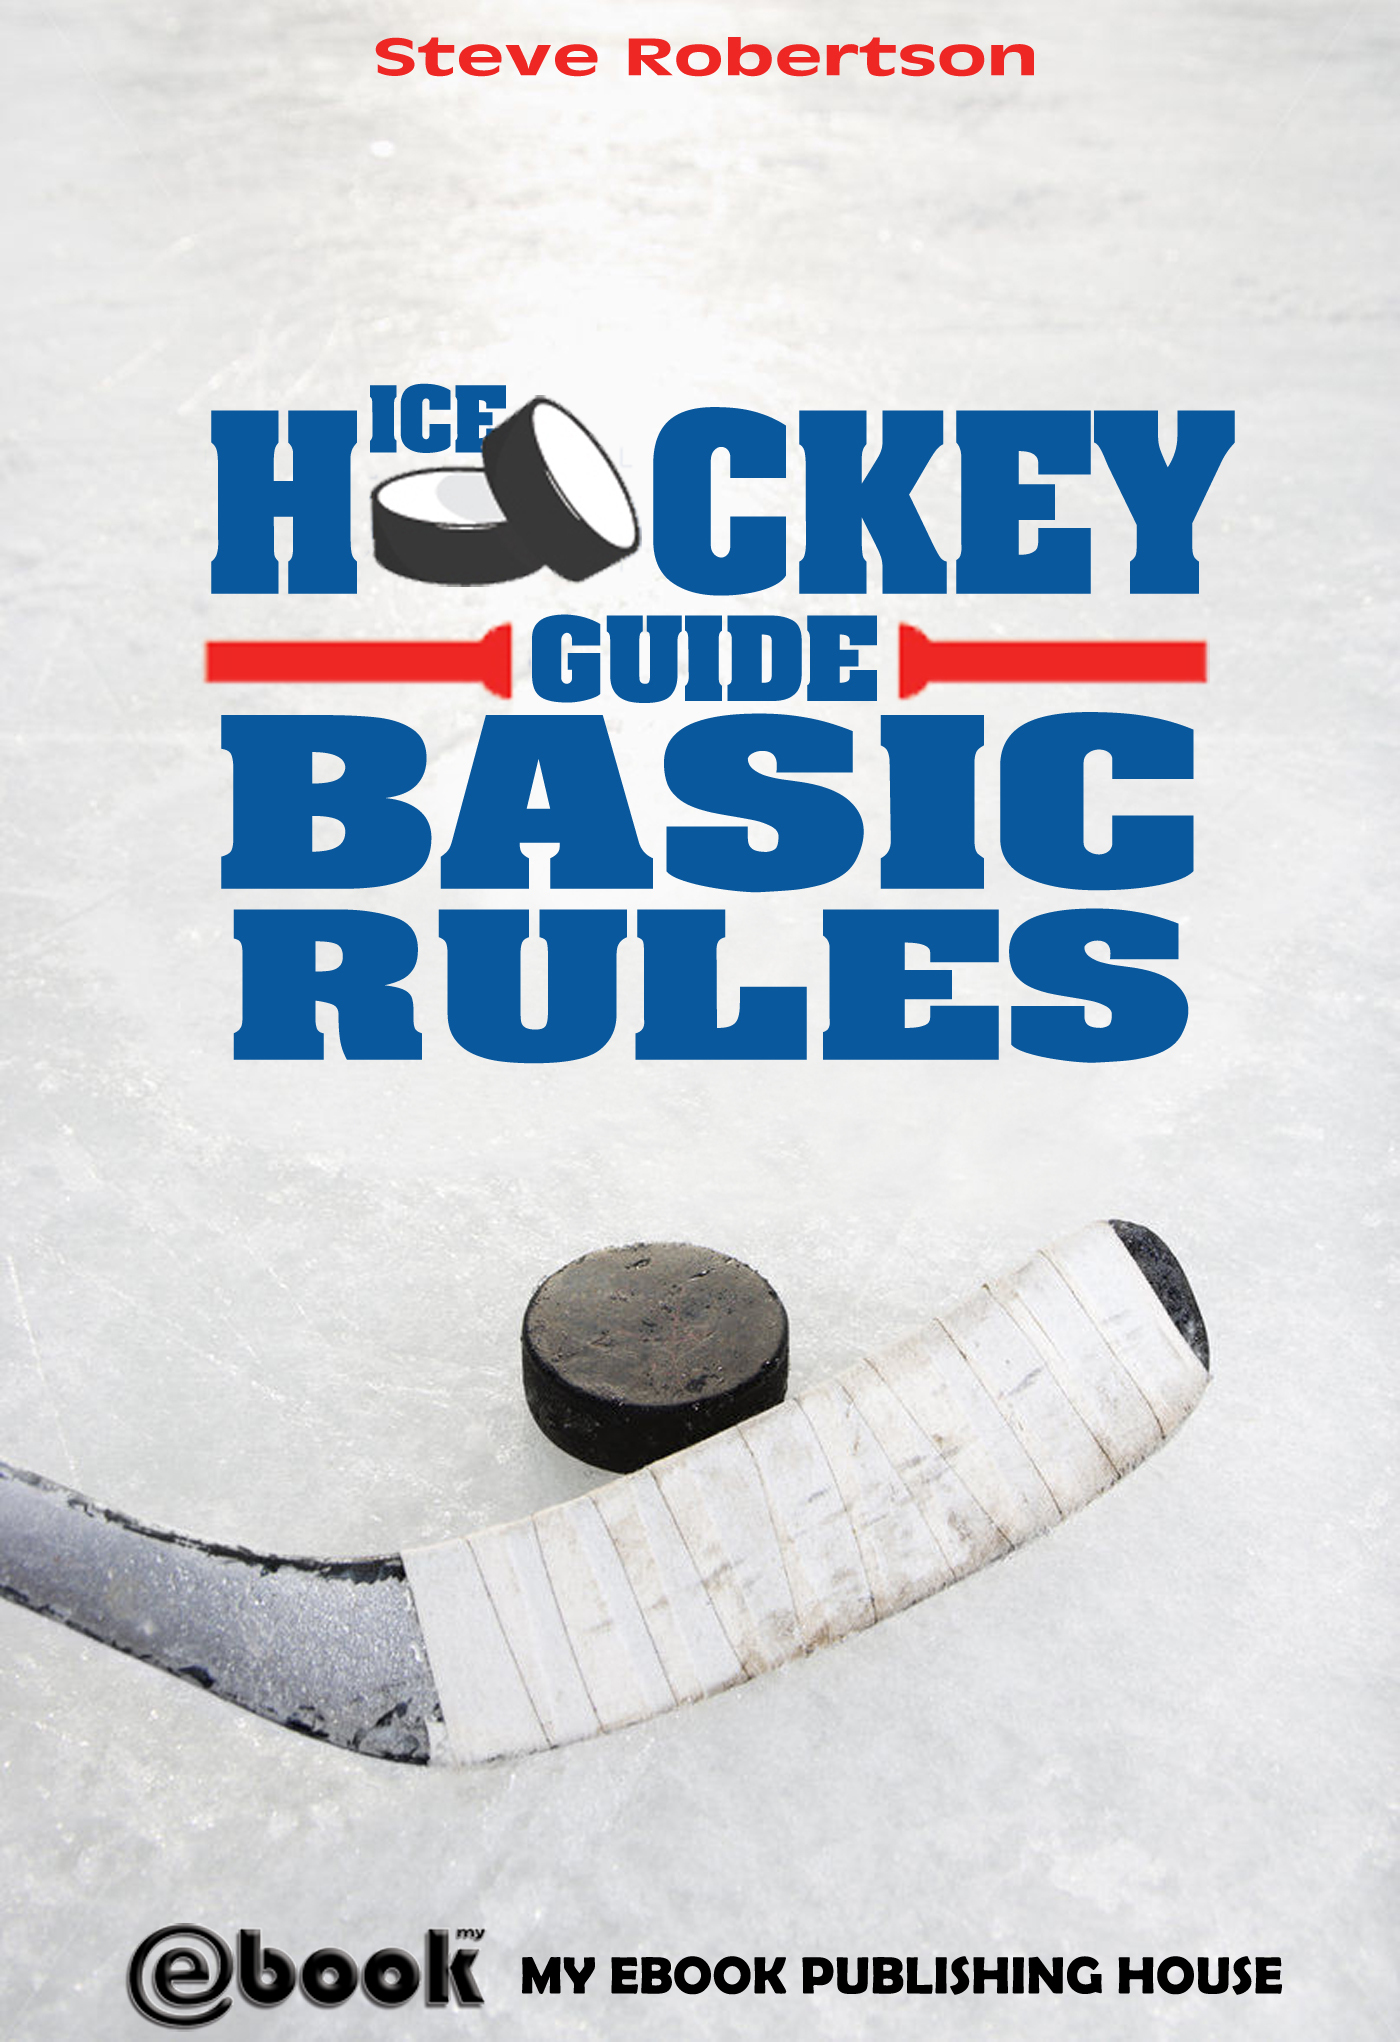 Ice Hockey Guide – Basic Rules